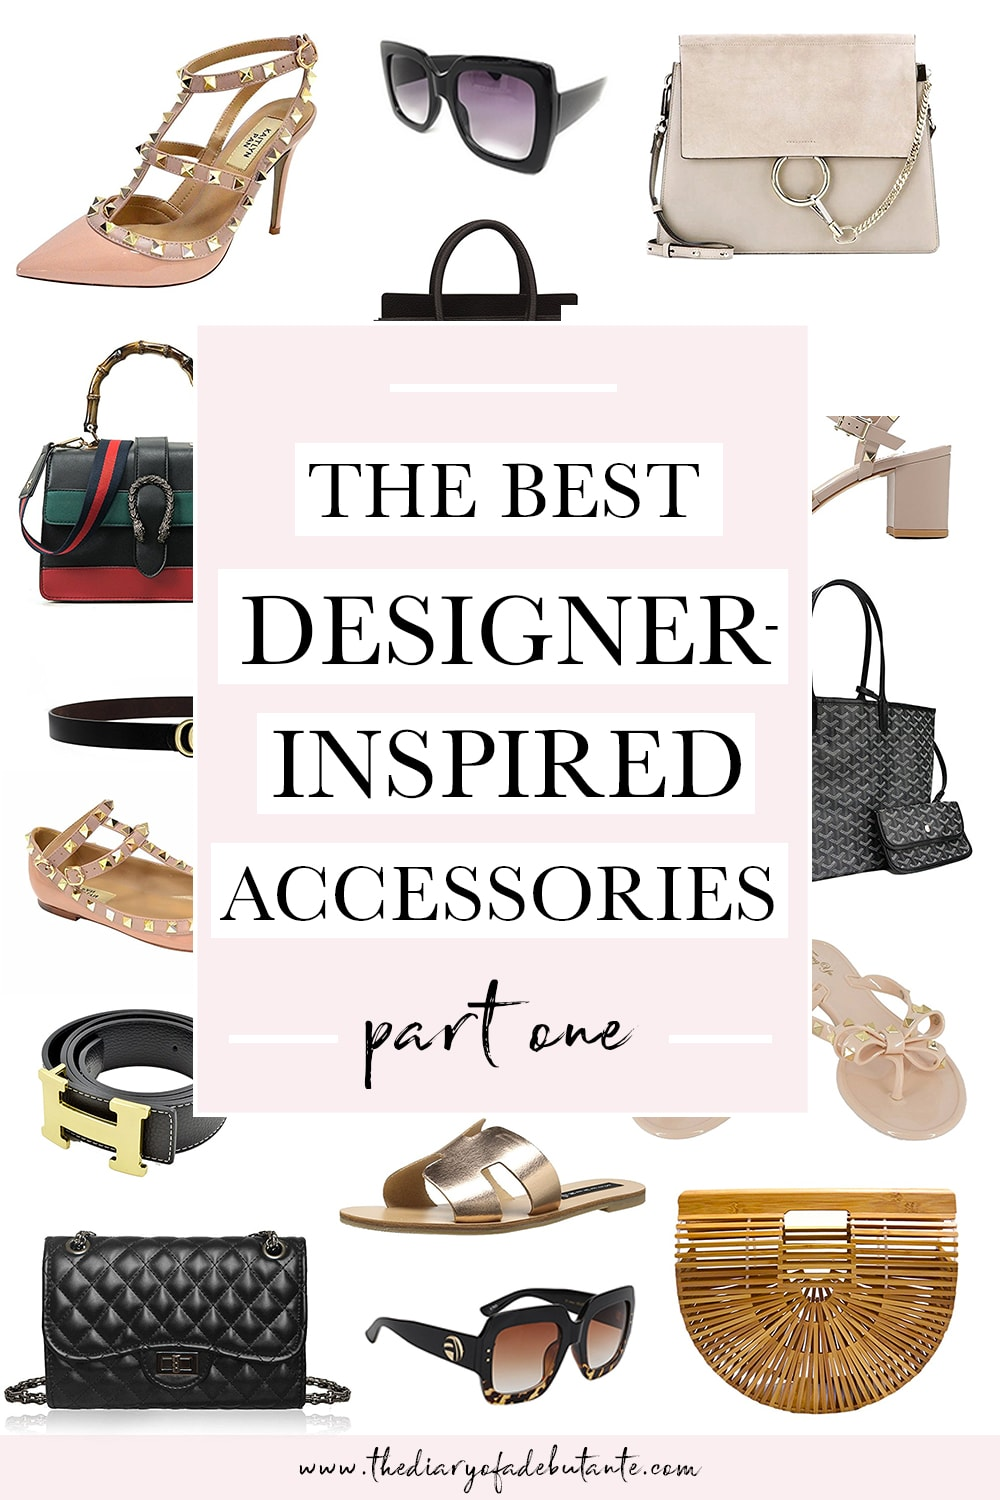 The best designer dupes on Amazon (including the best designer bag dupes, designer shoes dupes, and more) curated by affordable fashion blogger Stephanie Ziajka on Diary of a Debutante